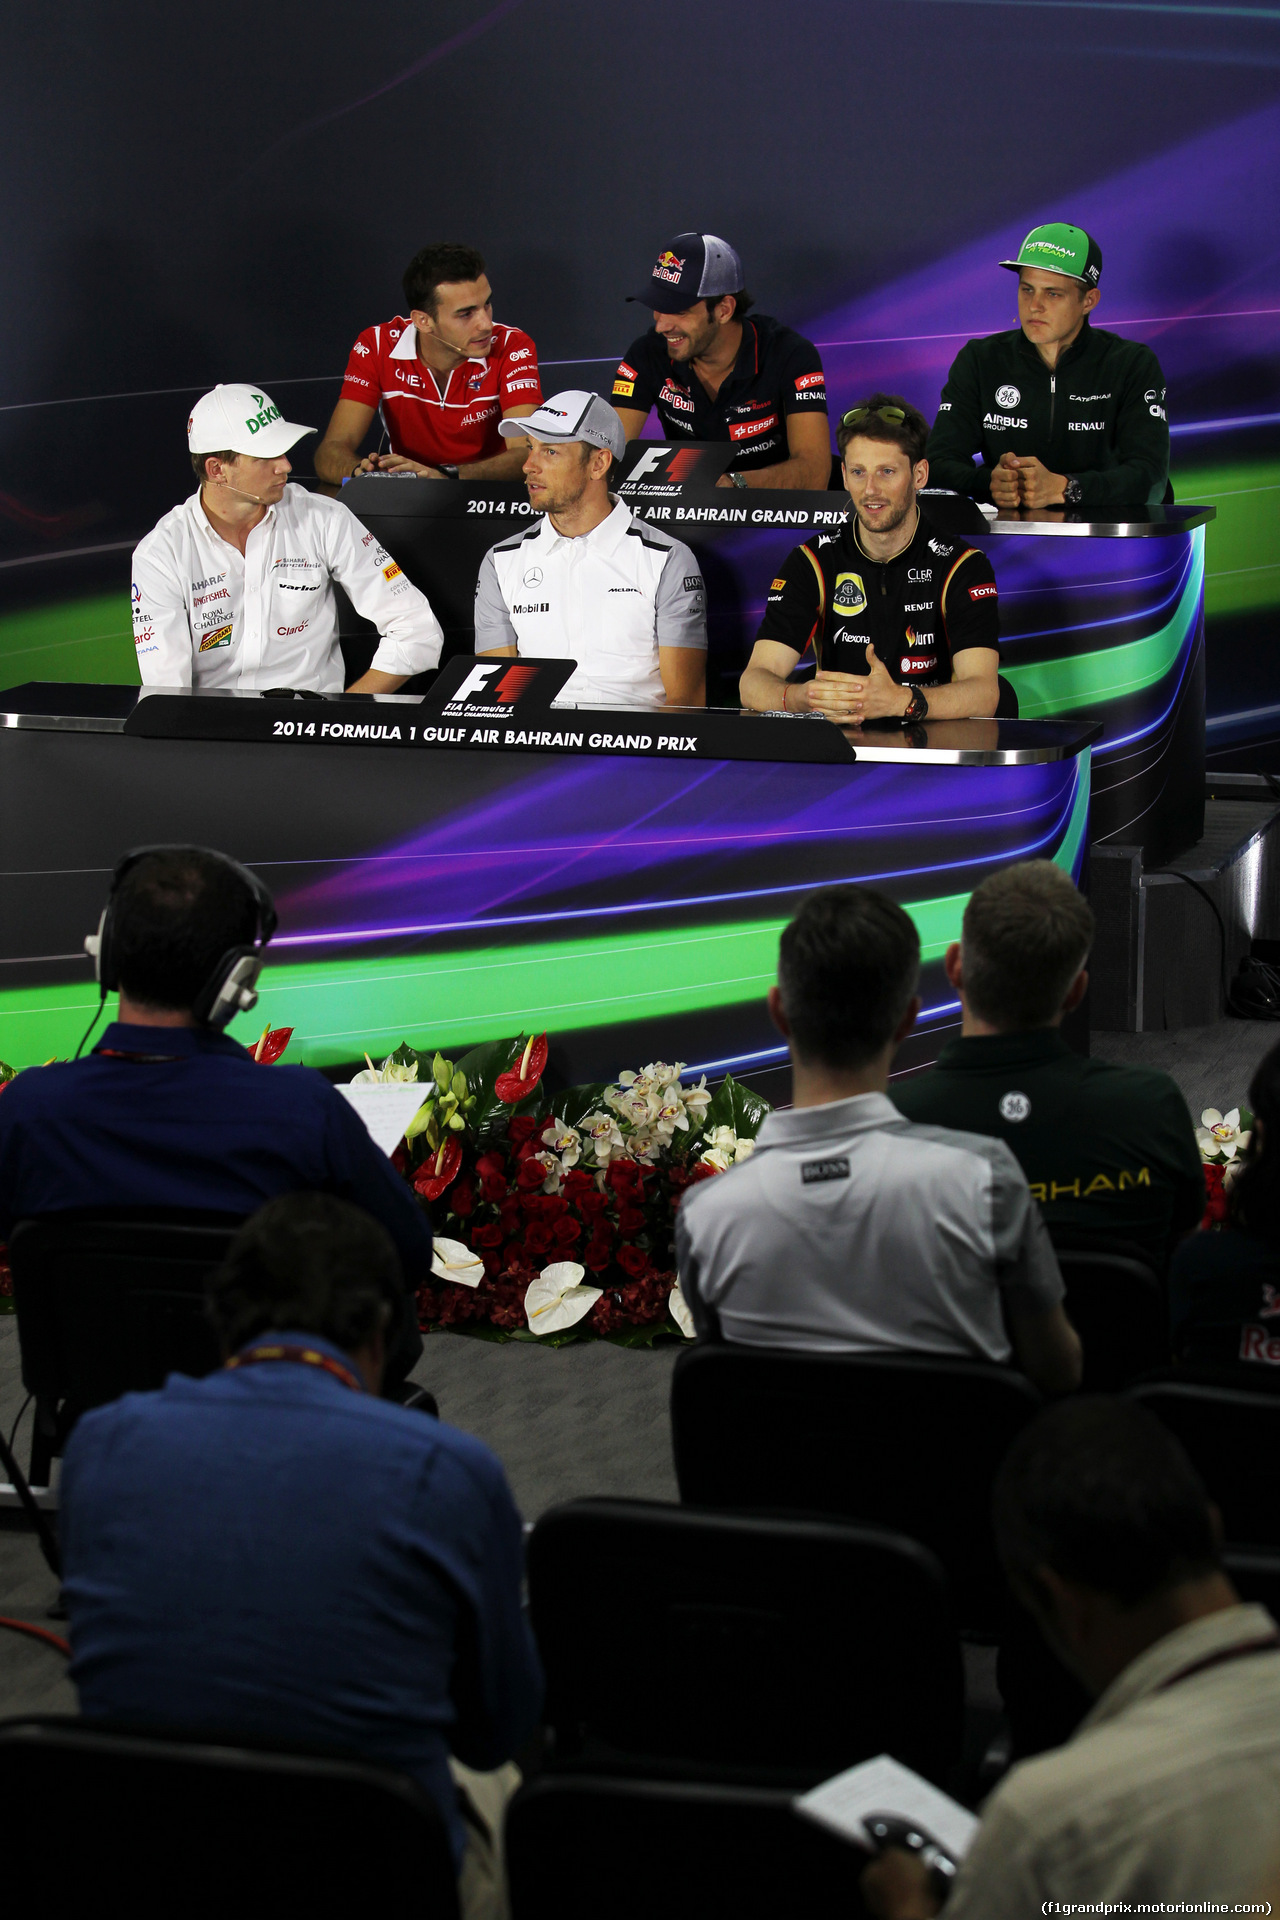 GP BAHRAIN, The FIA Press Conference (From back row (L to R)): Jules Bianchi (FRA) Marussia F1 Team; Jean-Eric Vergne (FRA) Scuderia Toro Rosso; Marcus Ericsson (SWE) Caterham; Nico Hulkenberg (GER) Sahara Force India F1; Jenson Button (GBR) McLaren; Romain Grosjean (FRA) Lotus F1 Team. 03.04.2014. Formula 1 World Championship, Rd 3, Bahrain Grand Prix, Sakhir, Bahrain, Preparation Day. -